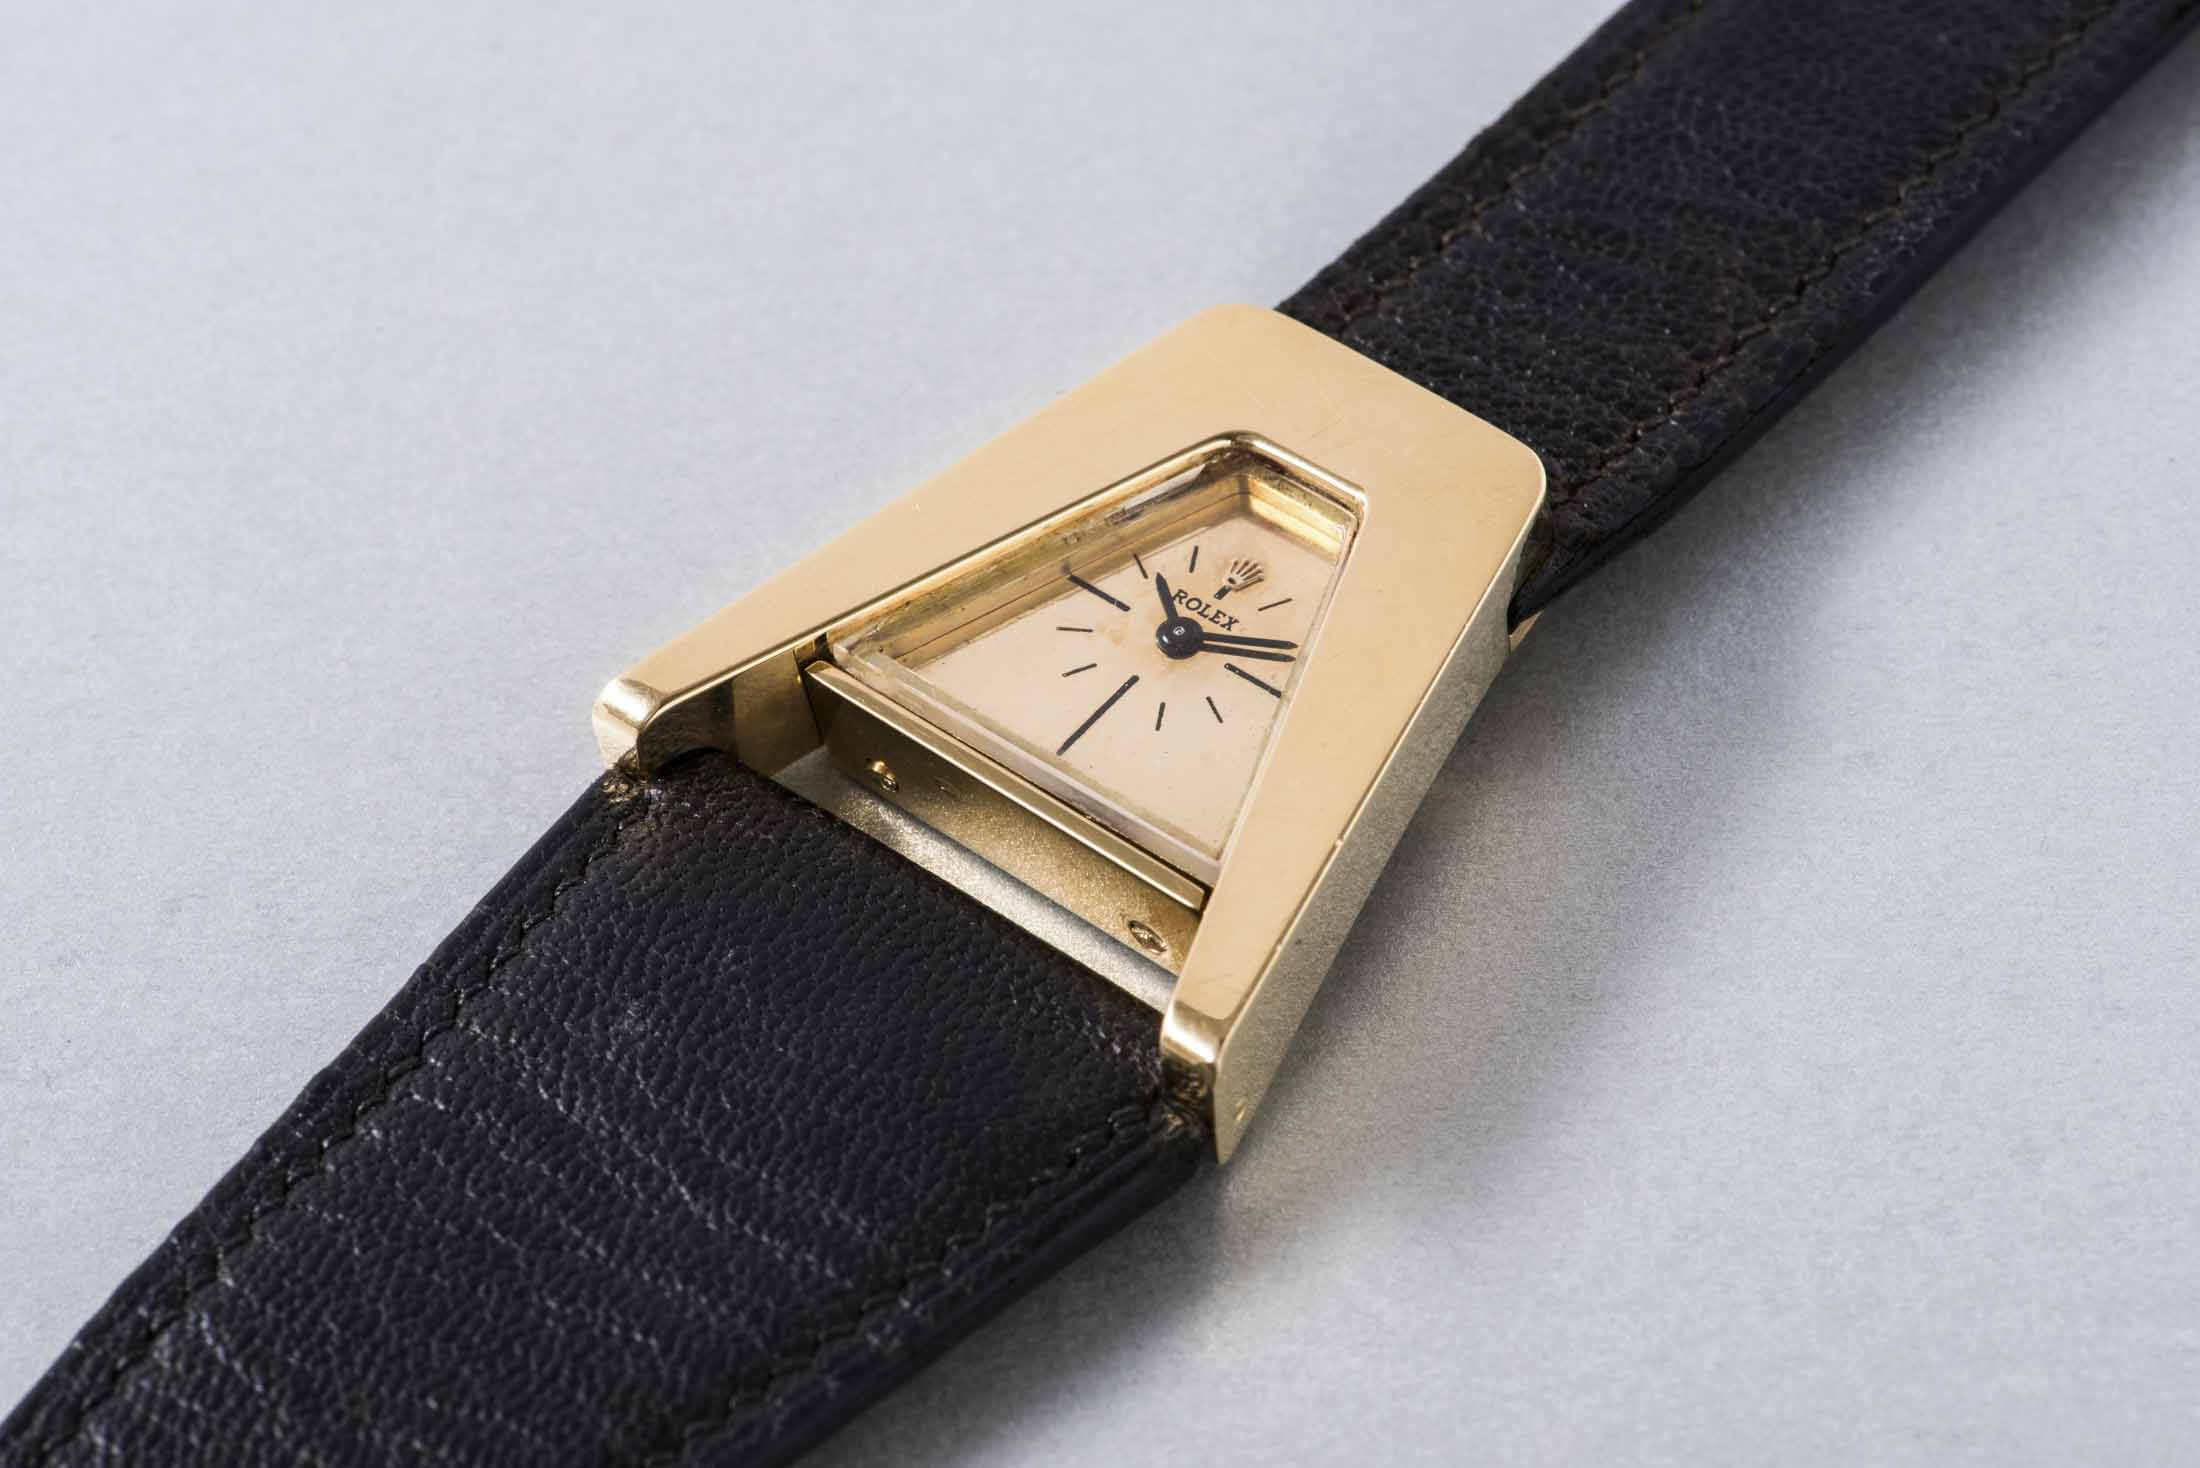 Rolex Unique and Highly Unusual Asymmetrical Gold Wristwatch